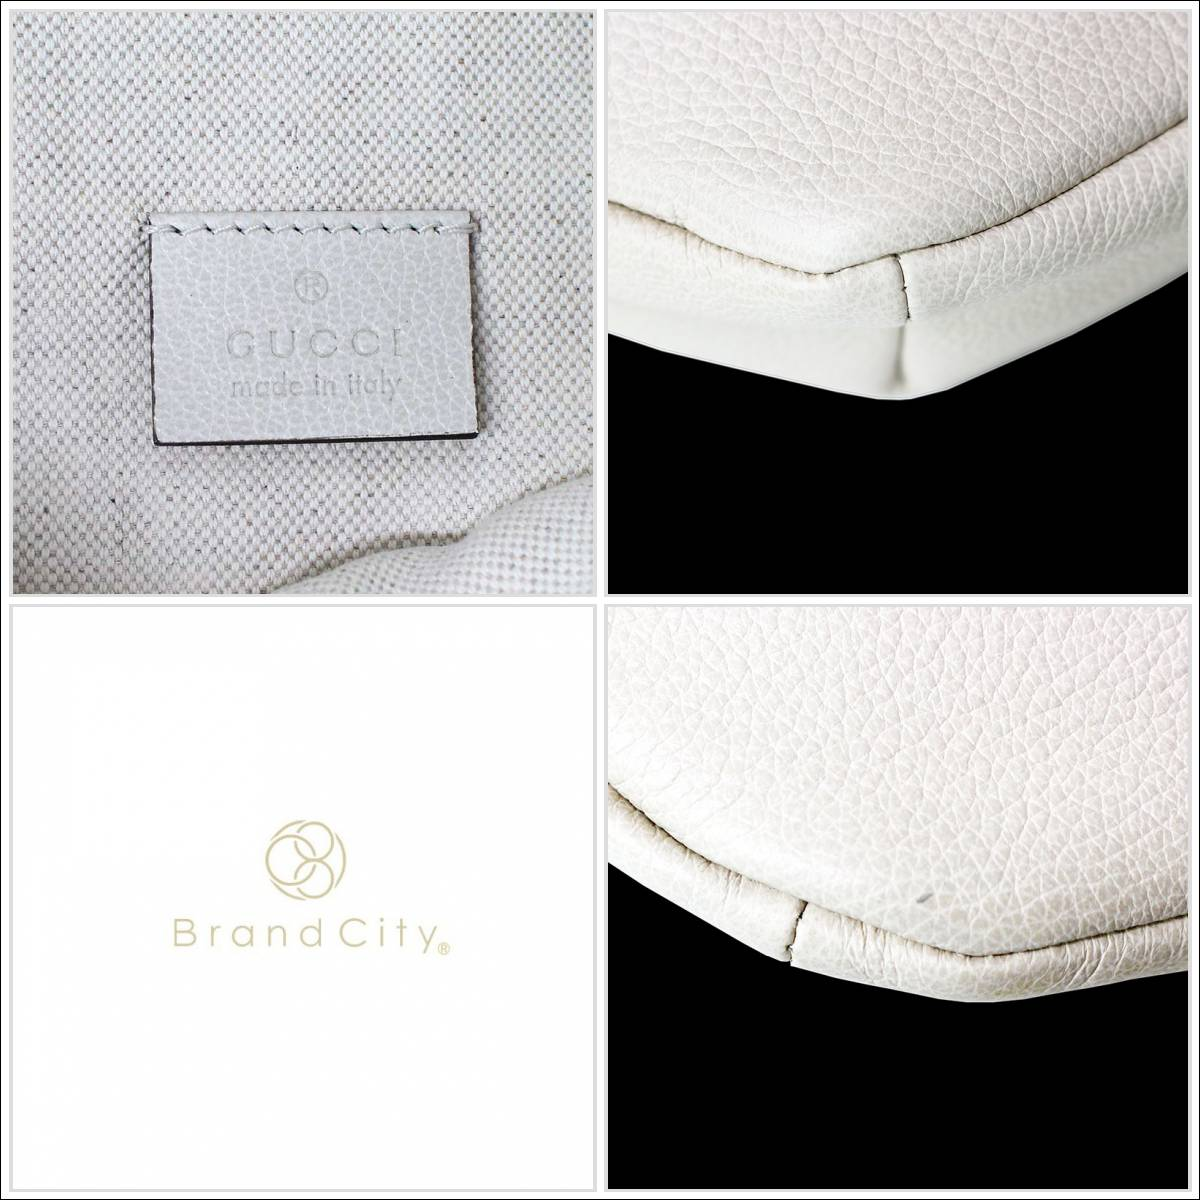 2371aed6151 BrandCity  Gucci print leather belt bag white white 493869